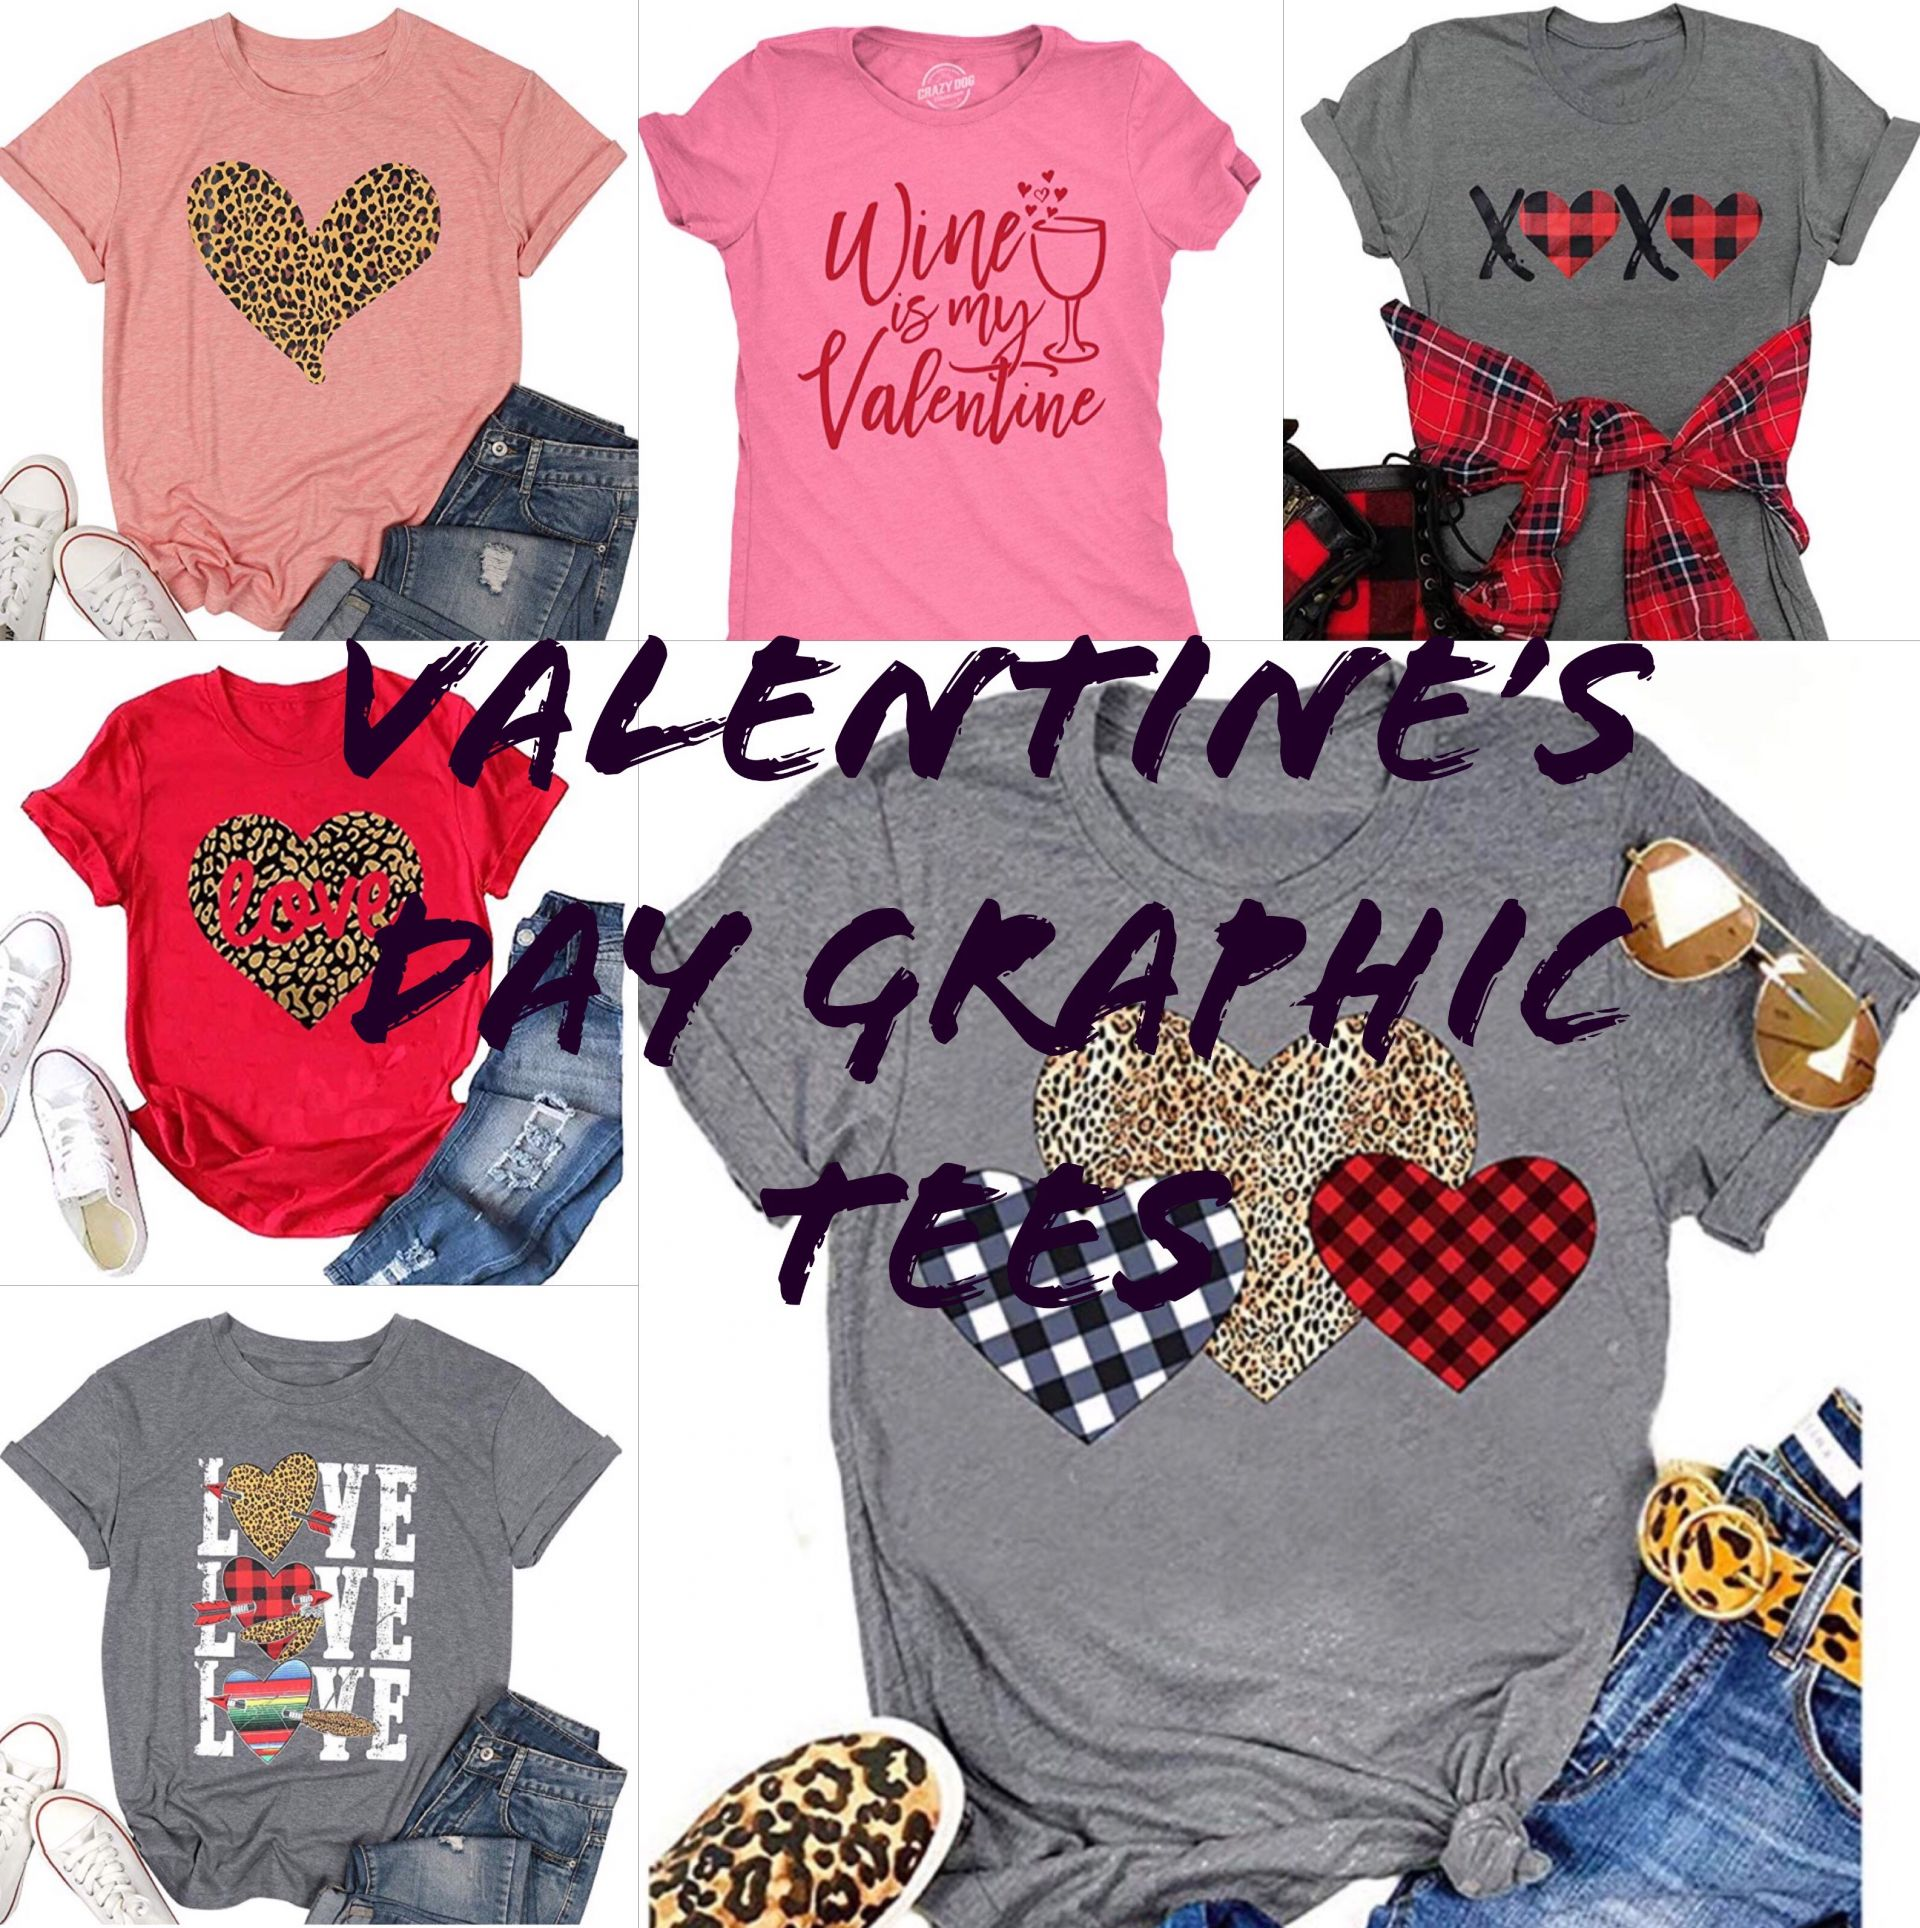 Valentines Day Finds- From Casual to Dressy!